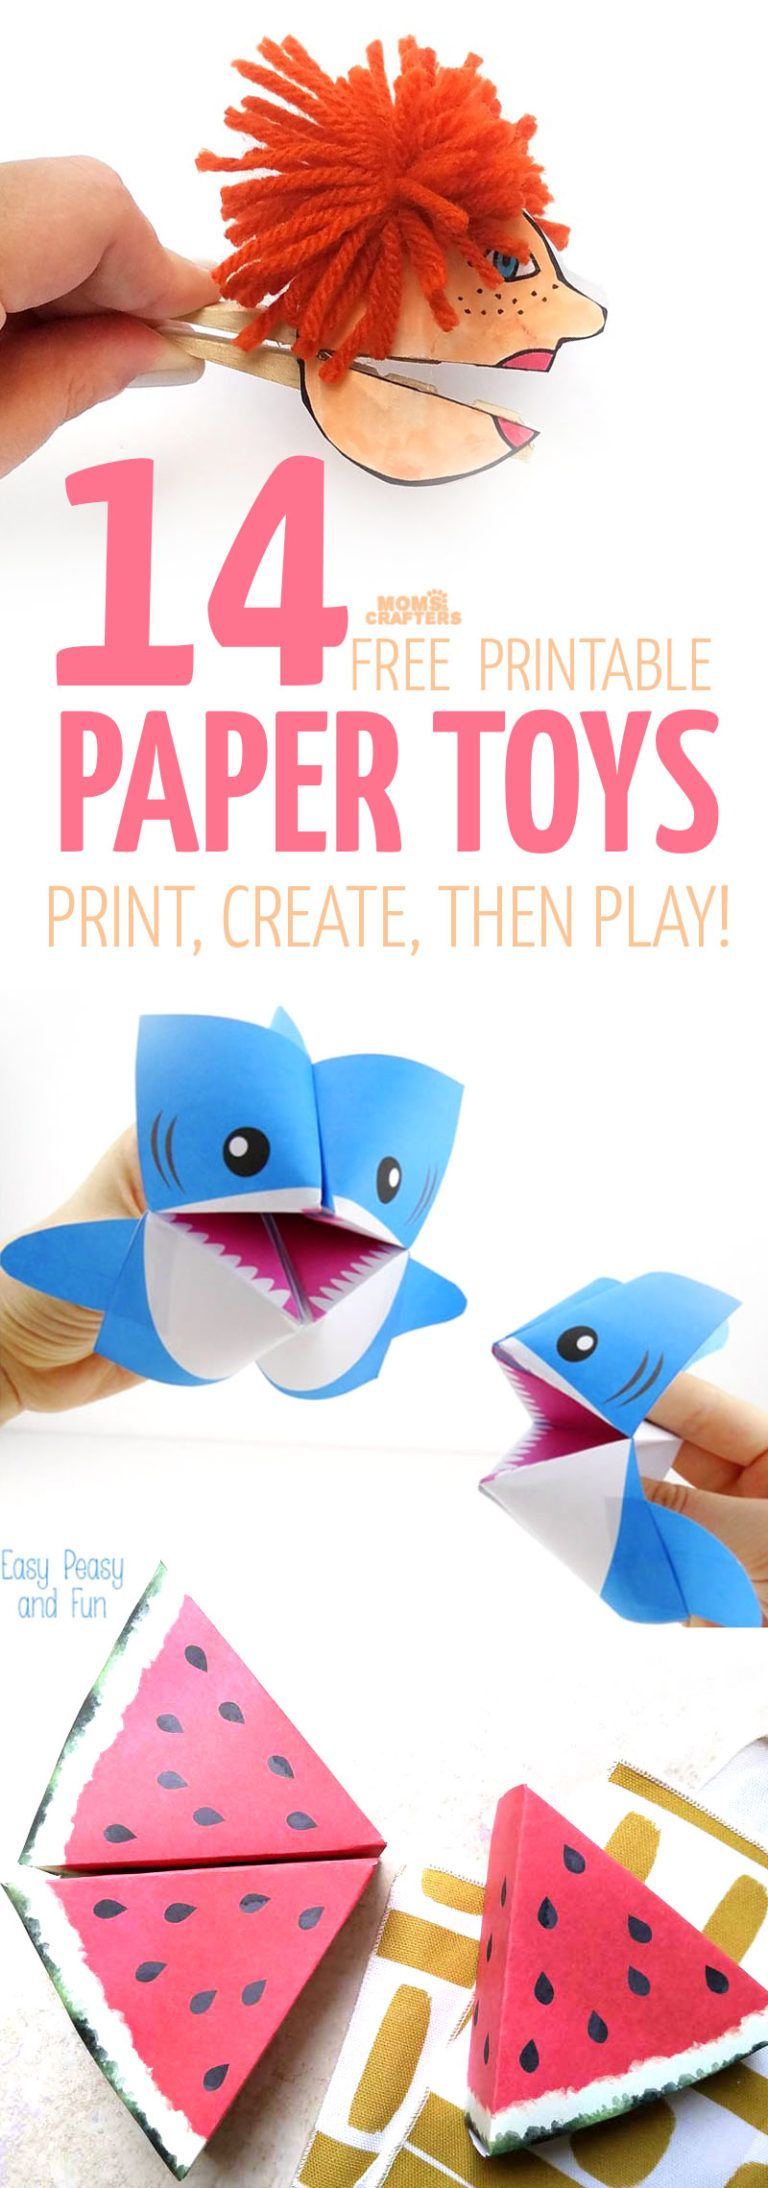 Paper Toy Templates - 14 Free Printables To Craft And Play! | Papier - Free Printable Paper Crafts